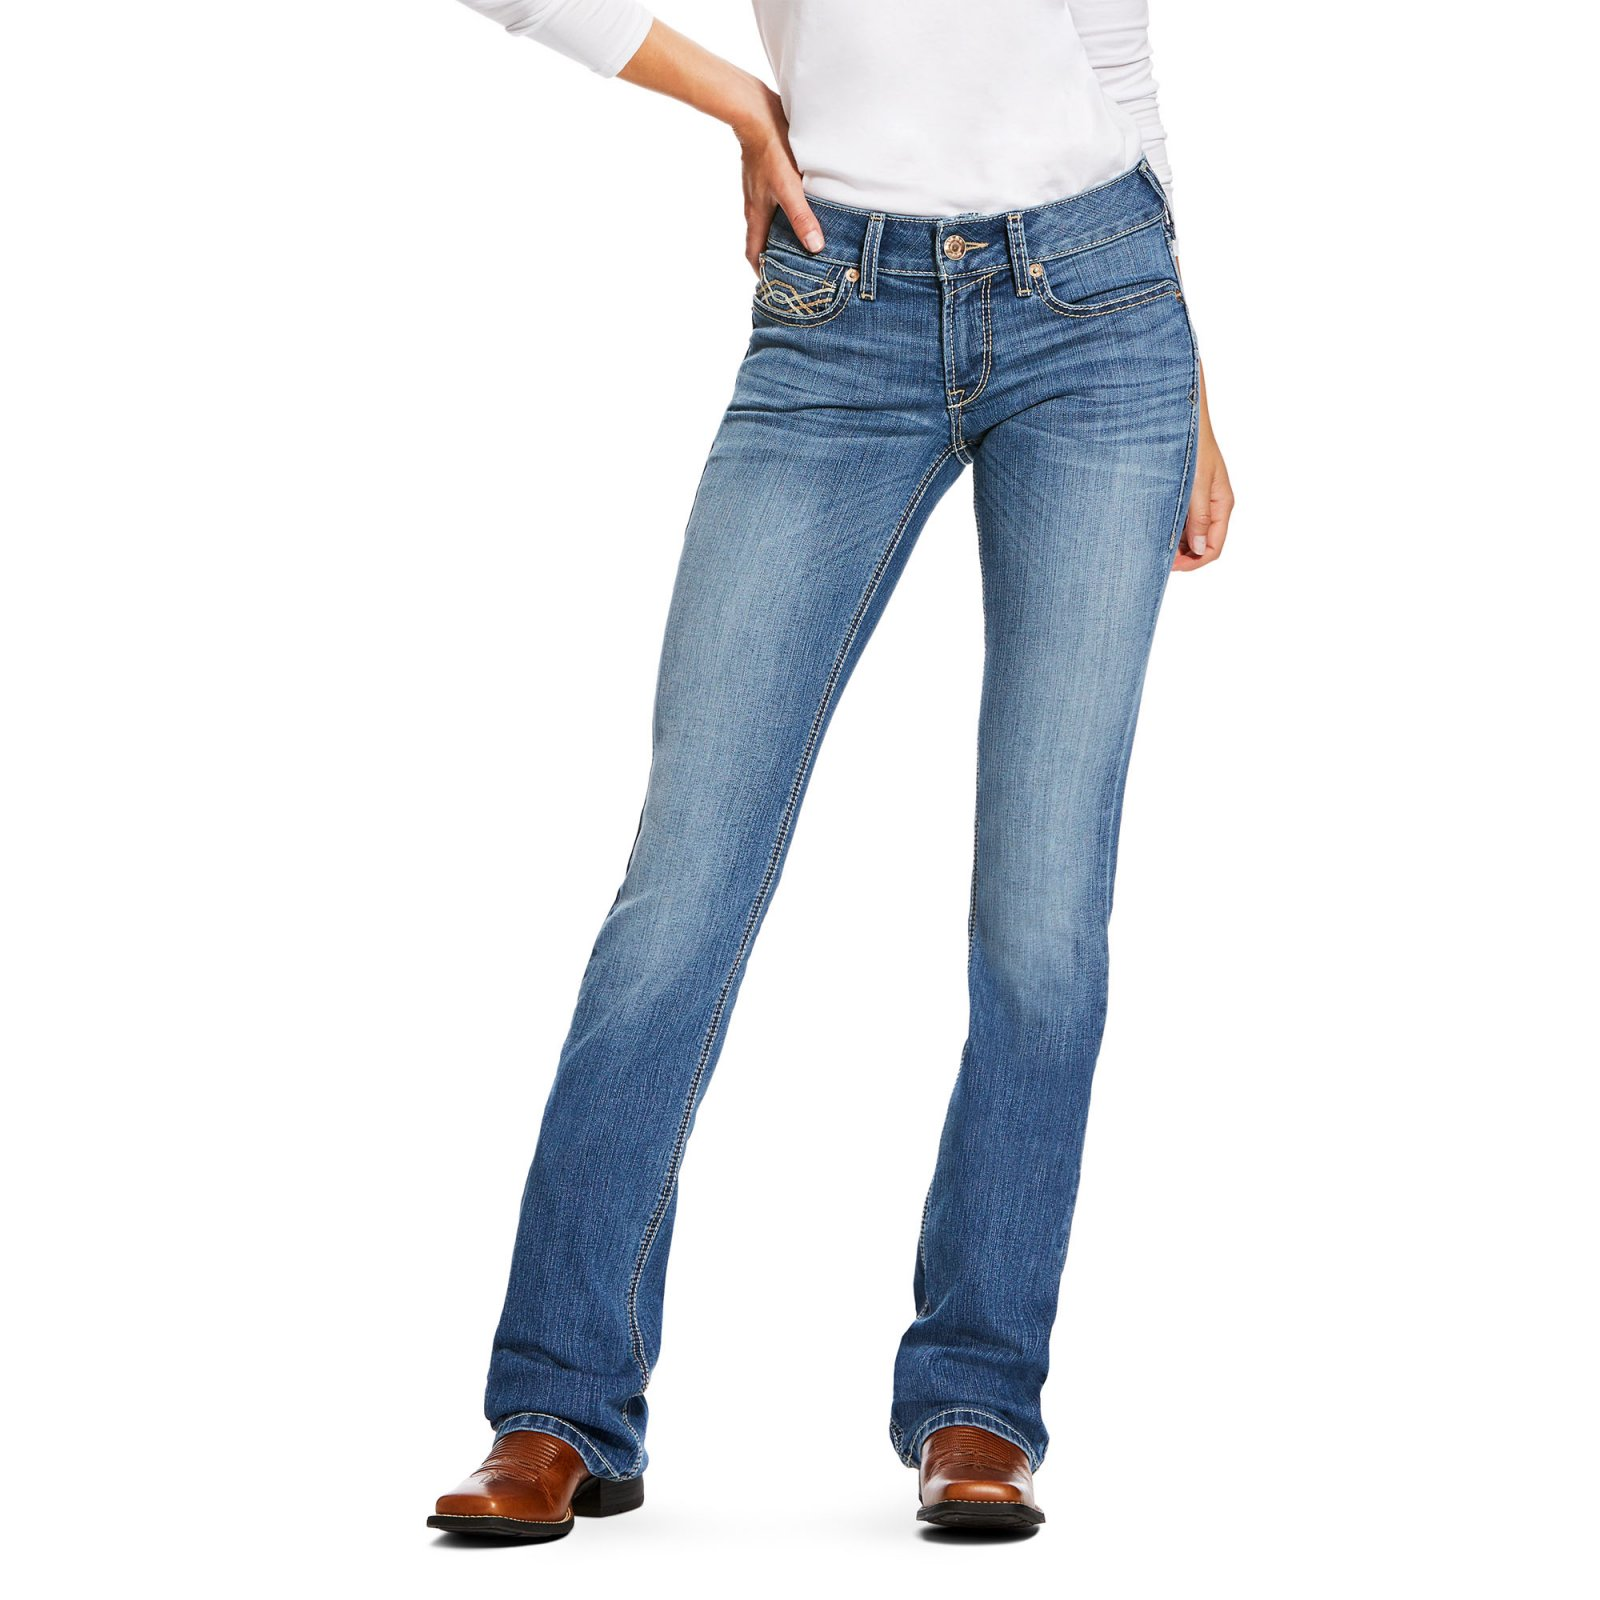 REAL Crossroads Mid-Rise Jean from Ariat